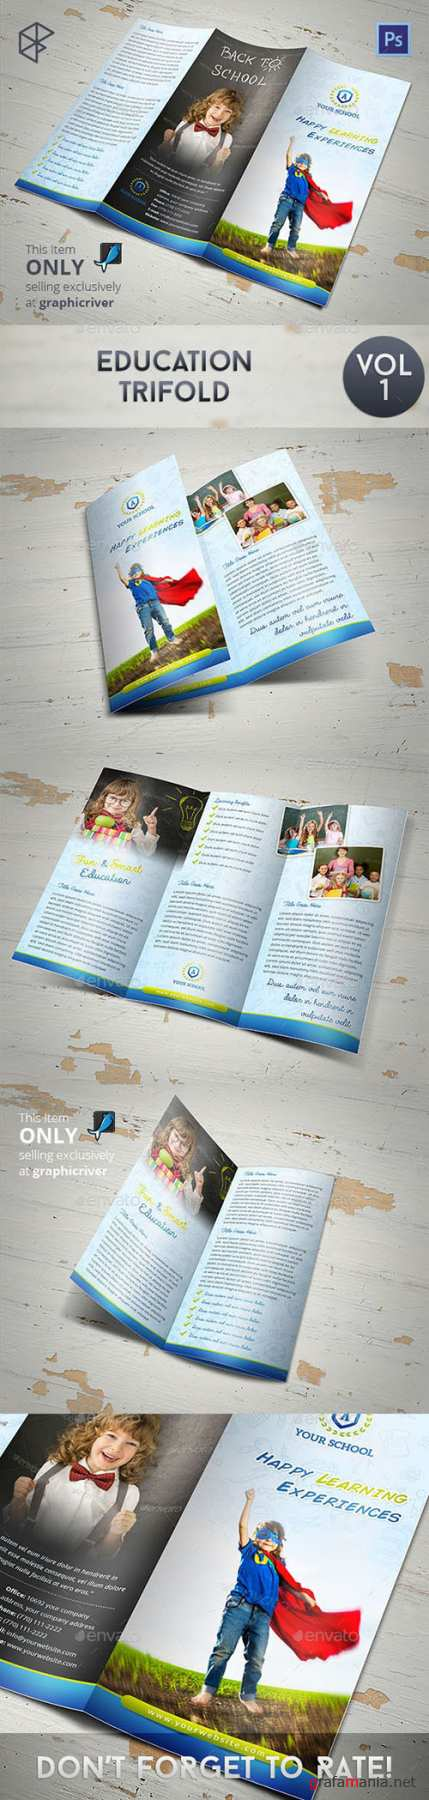 GR - Education Trifold 8373208